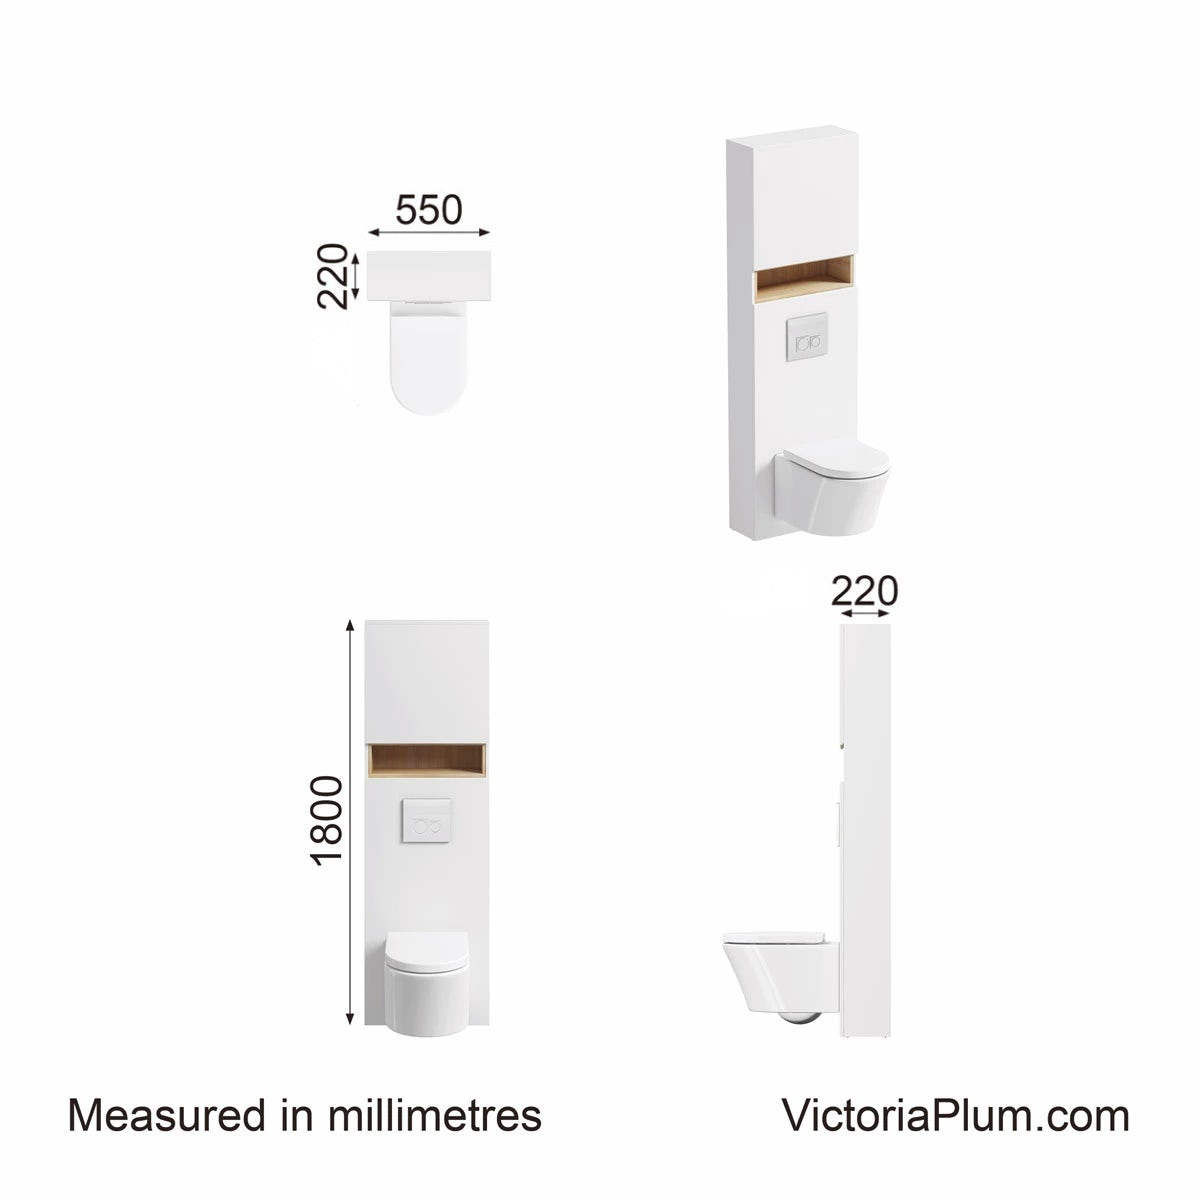 Dimensions for Mode Tate white & oak tall toilet unit